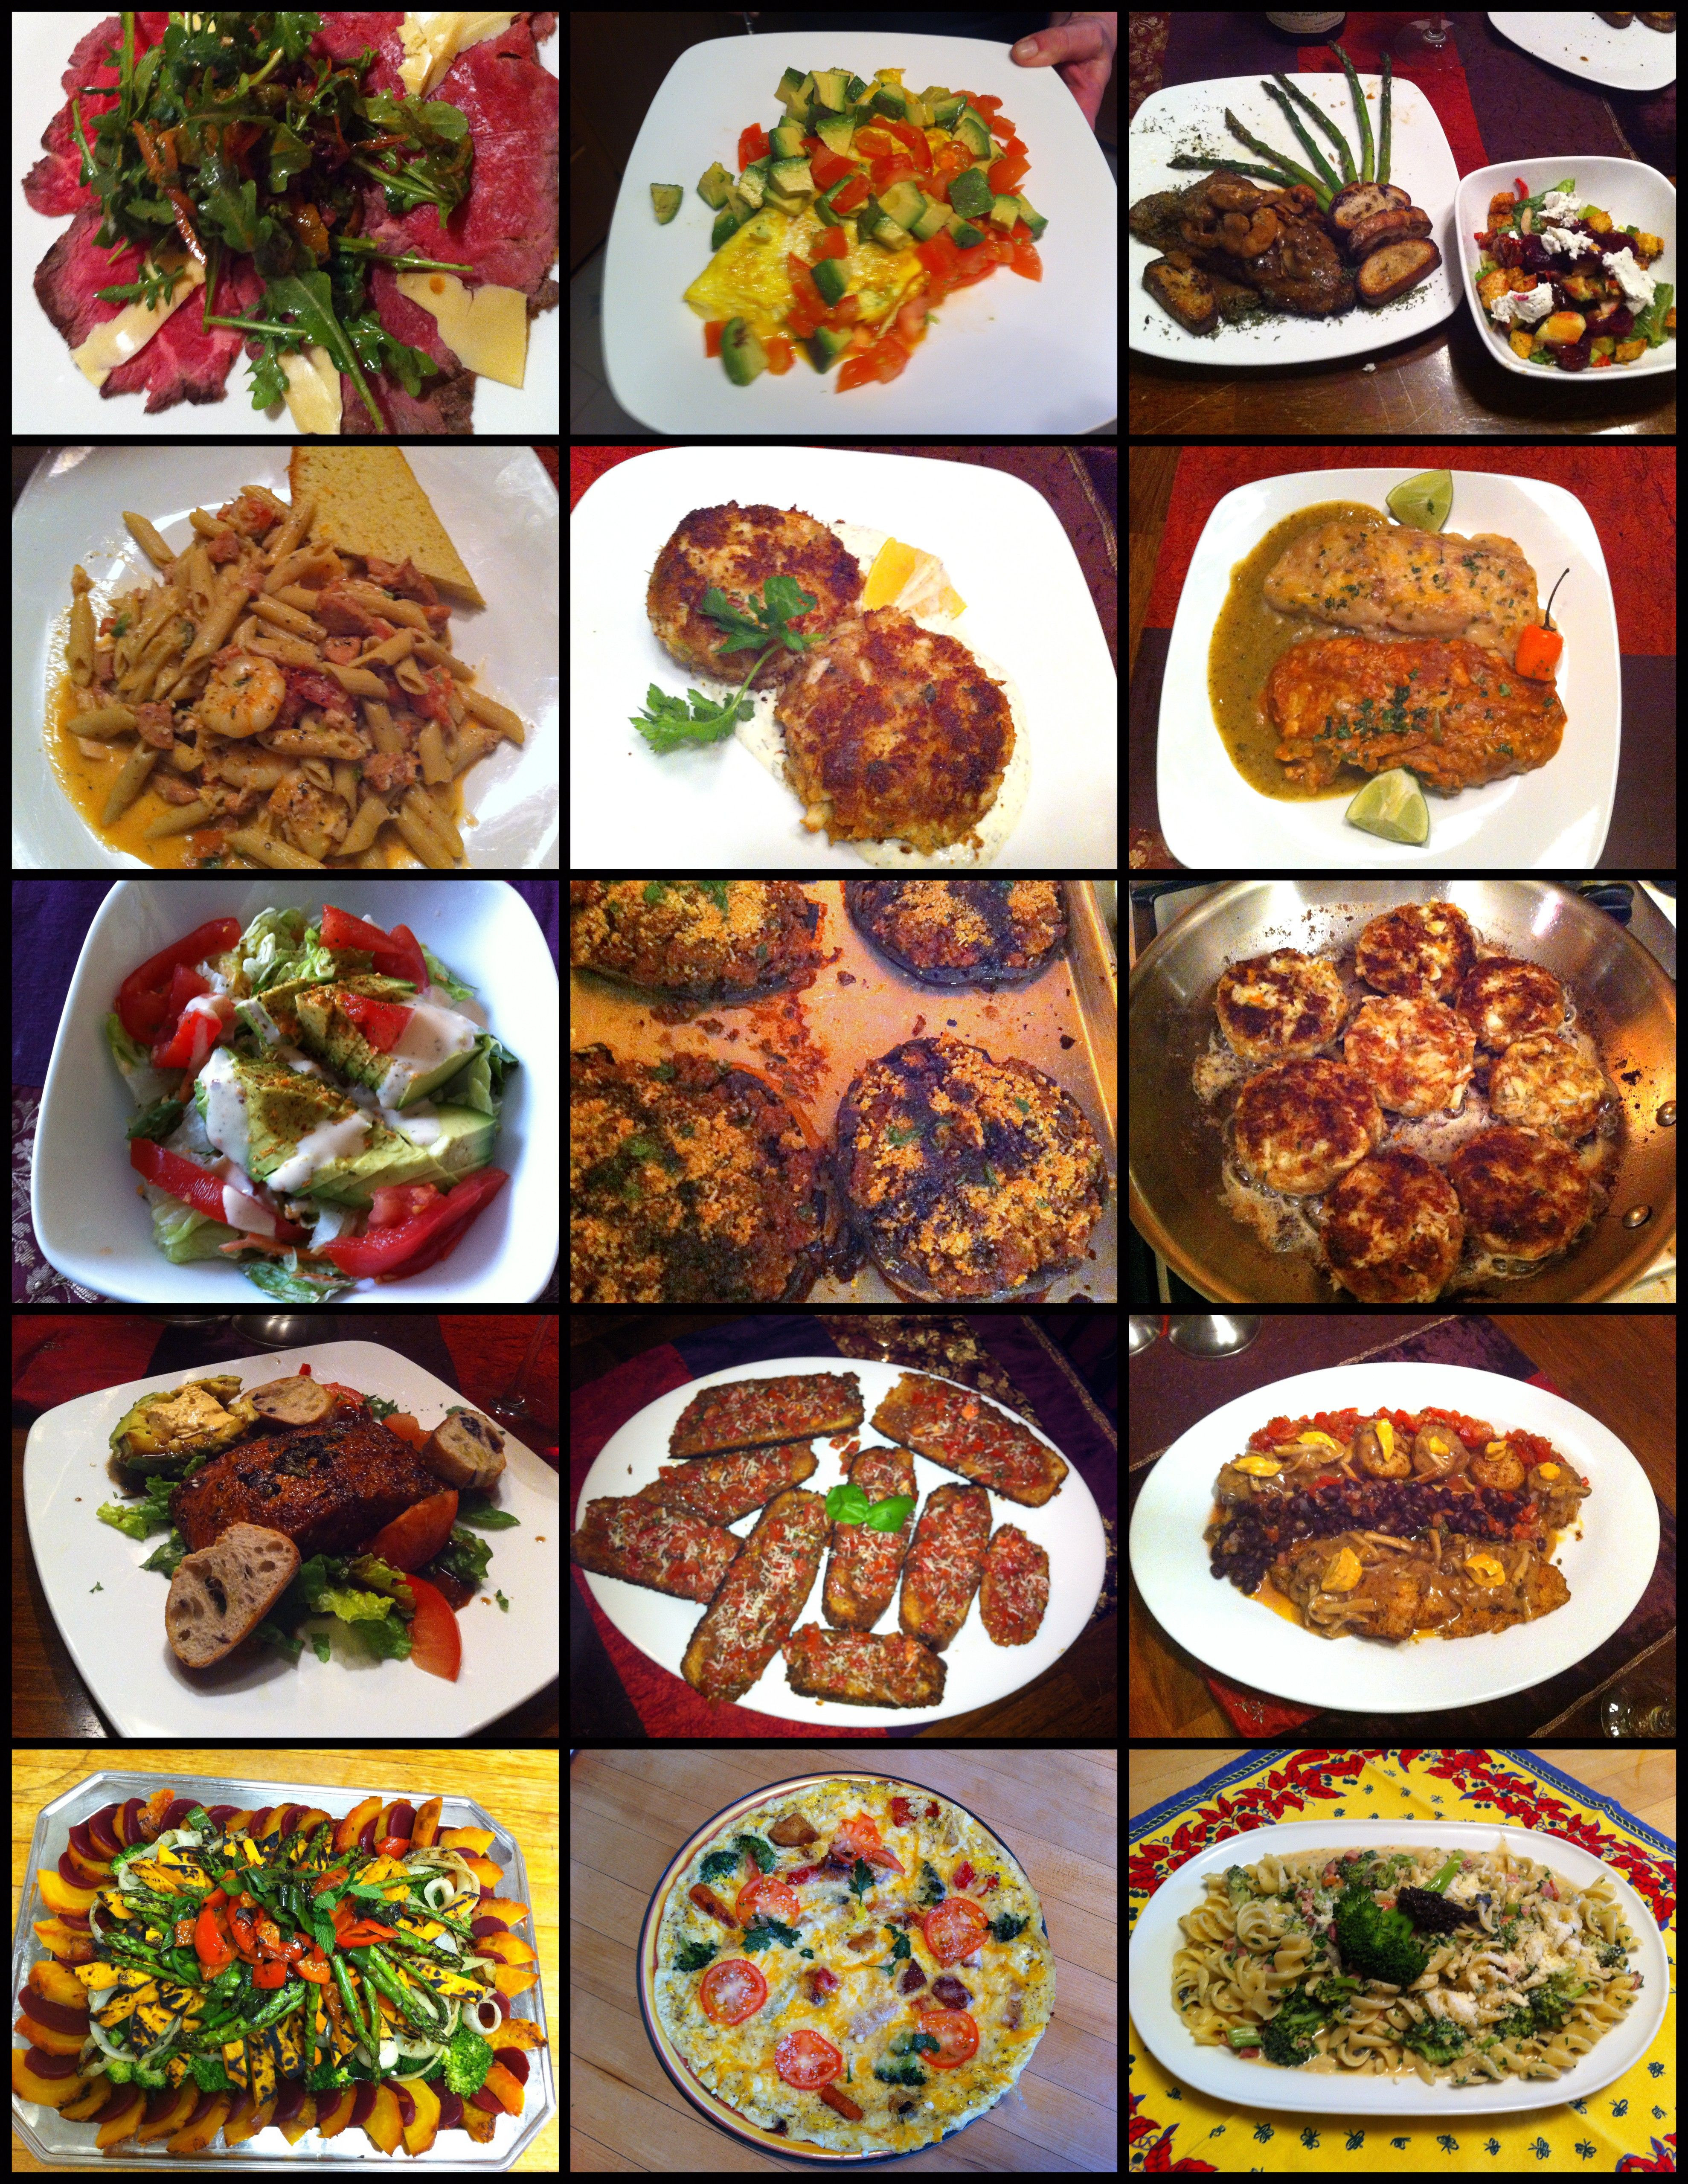 Food Ideas For Dinner Party  Best 25 Dinner party foods ideas on Pinterest